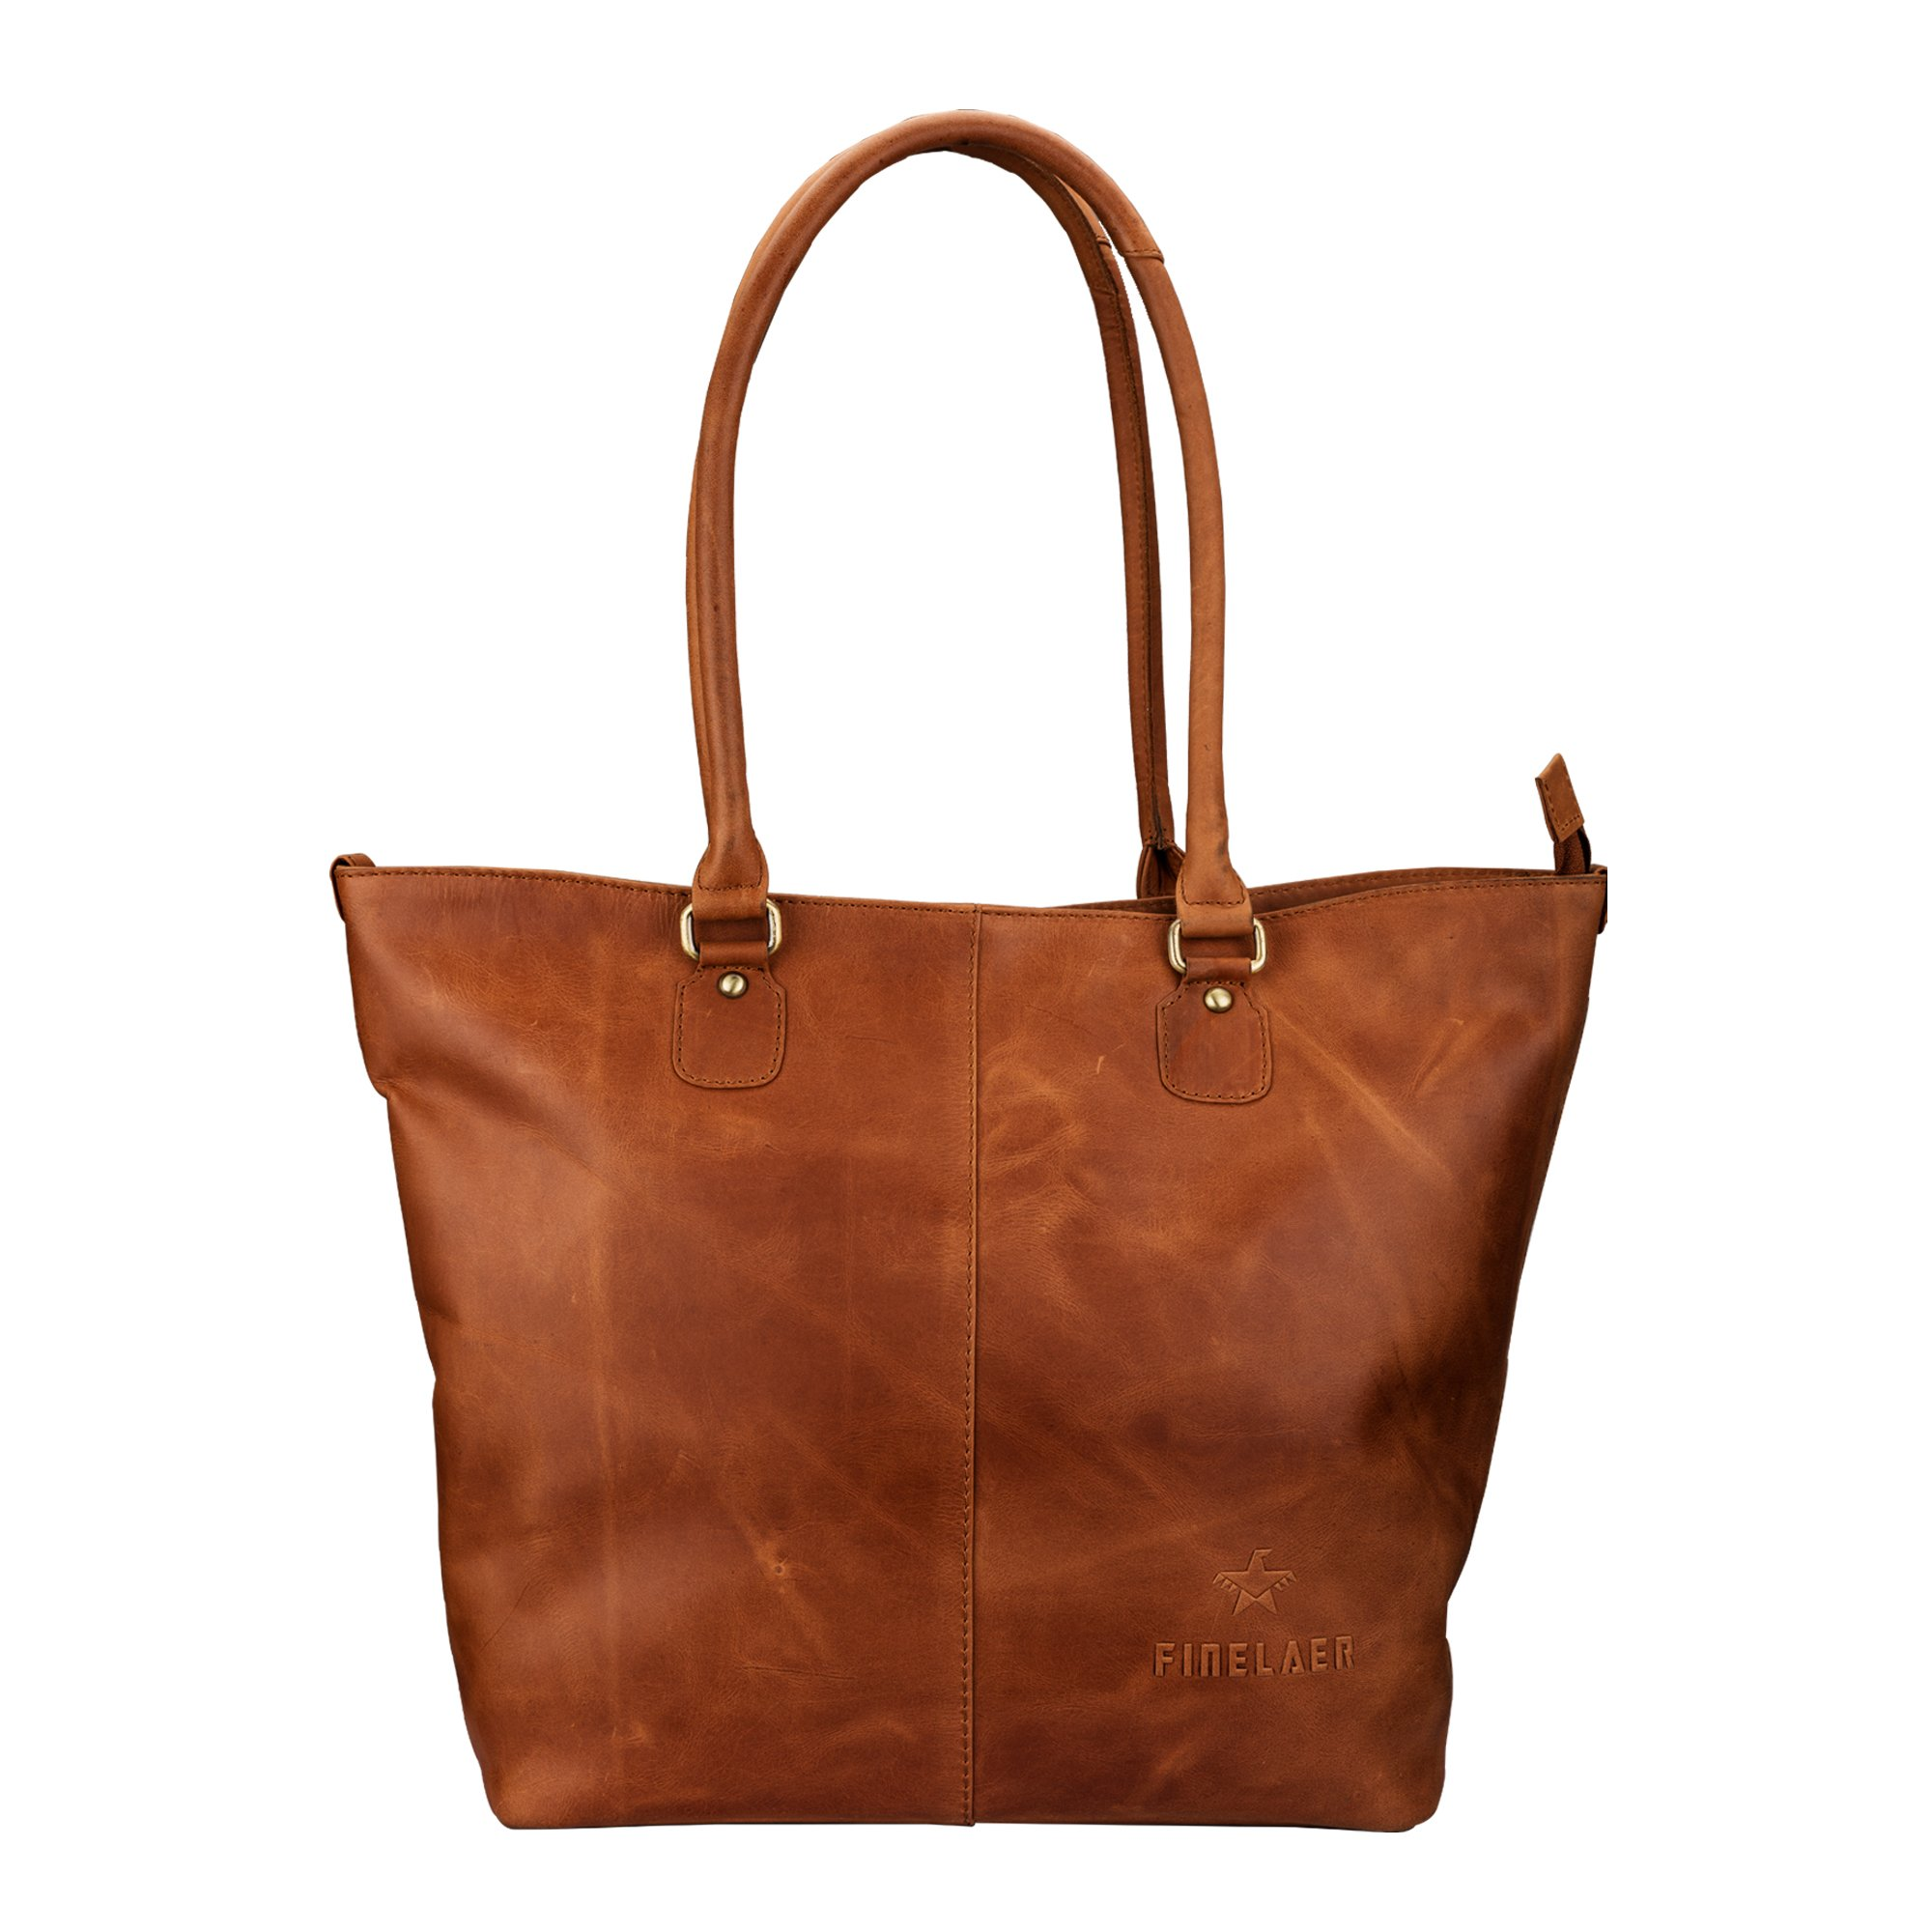 Finelaer Leather Work Tote Shoulder Handbag Purse Organizer for Women with Zipper Brown